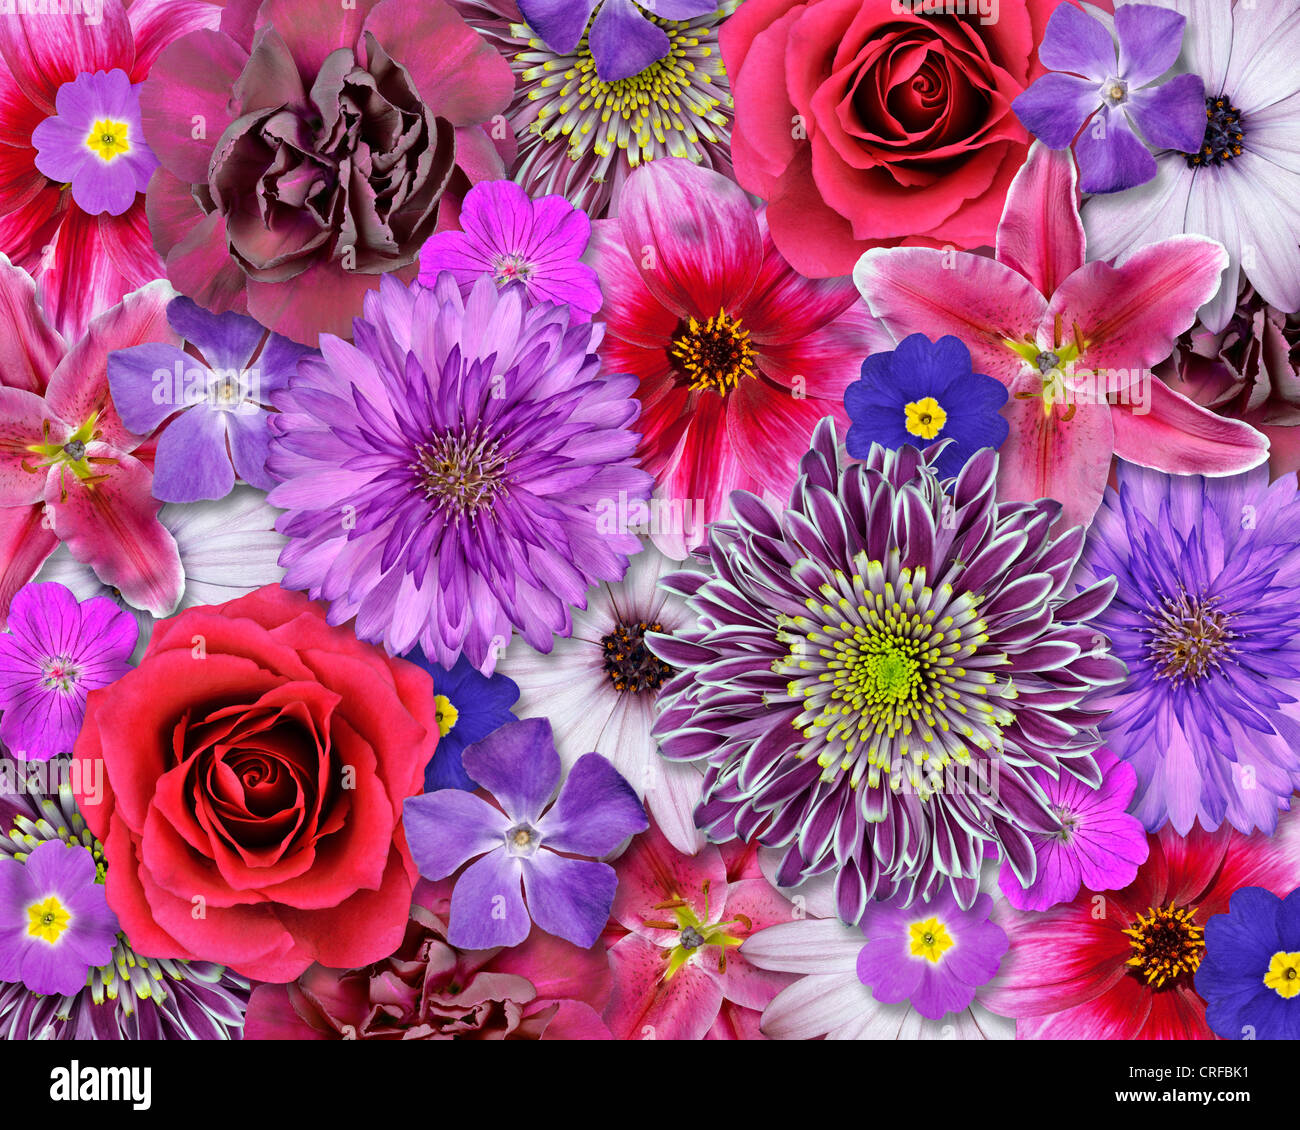 Dahlia isolated on pure white stock photos dahlia isolated on pure flower collection pink purple blue red white set dahlia chrysanthemum daisy cornflower periwinkle carnation isolated mightylinksfo